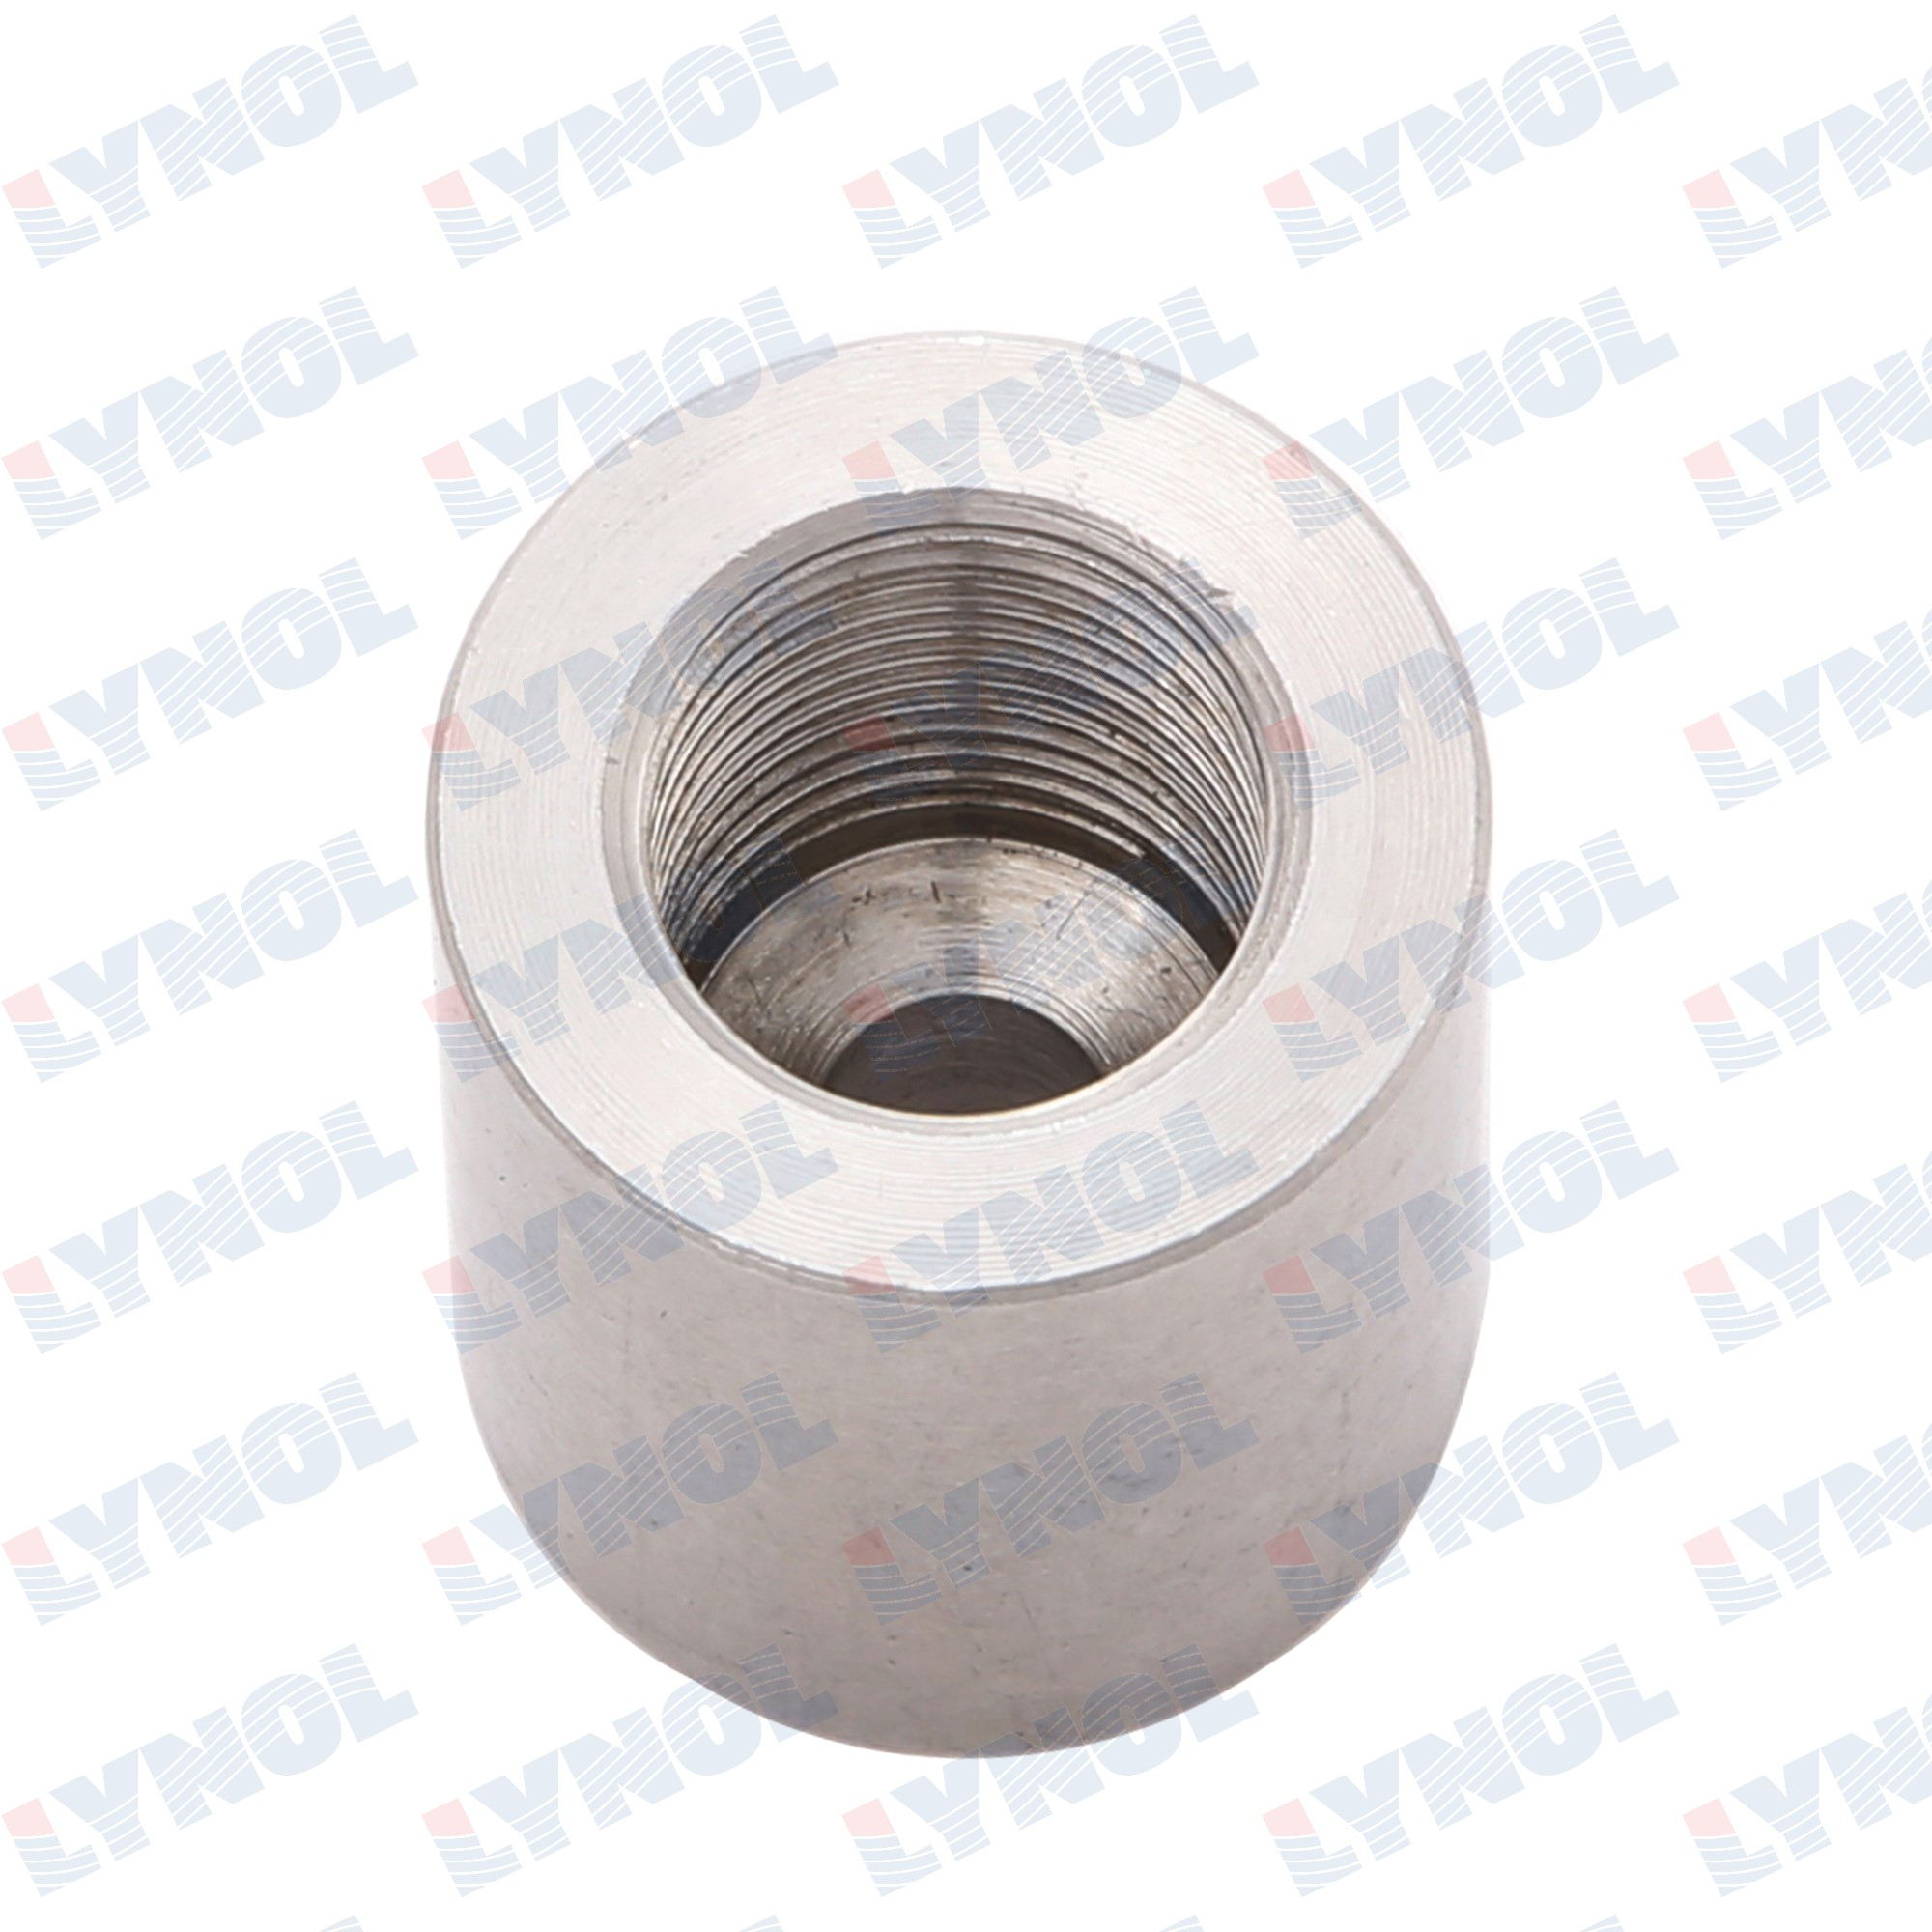 4504004 - SENSOR BUNG - M14*1.25 - Normal Flare Overall Length 1'', Outside Diameter 7/8''